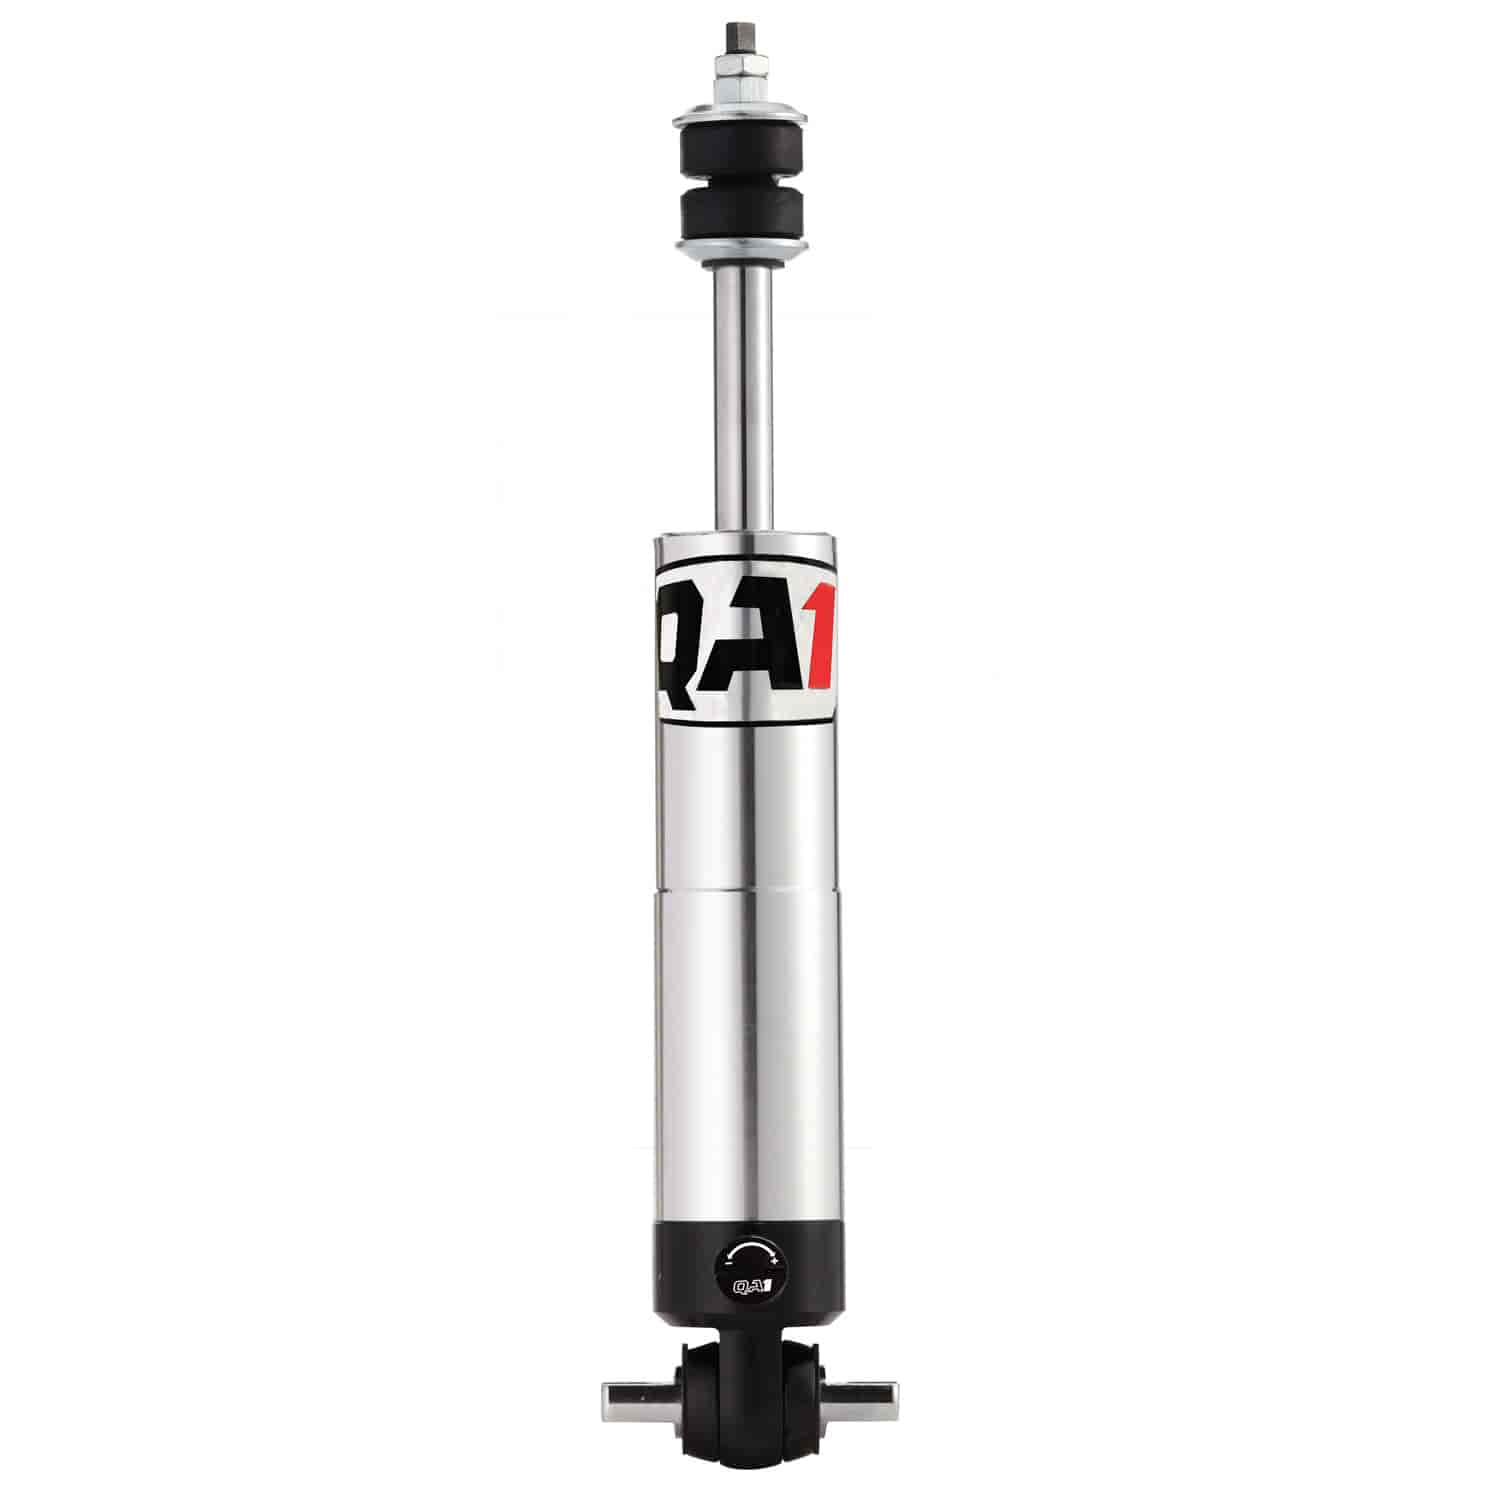 QA1 TS508 - QA1 Stocker Star Adjustable Shocks